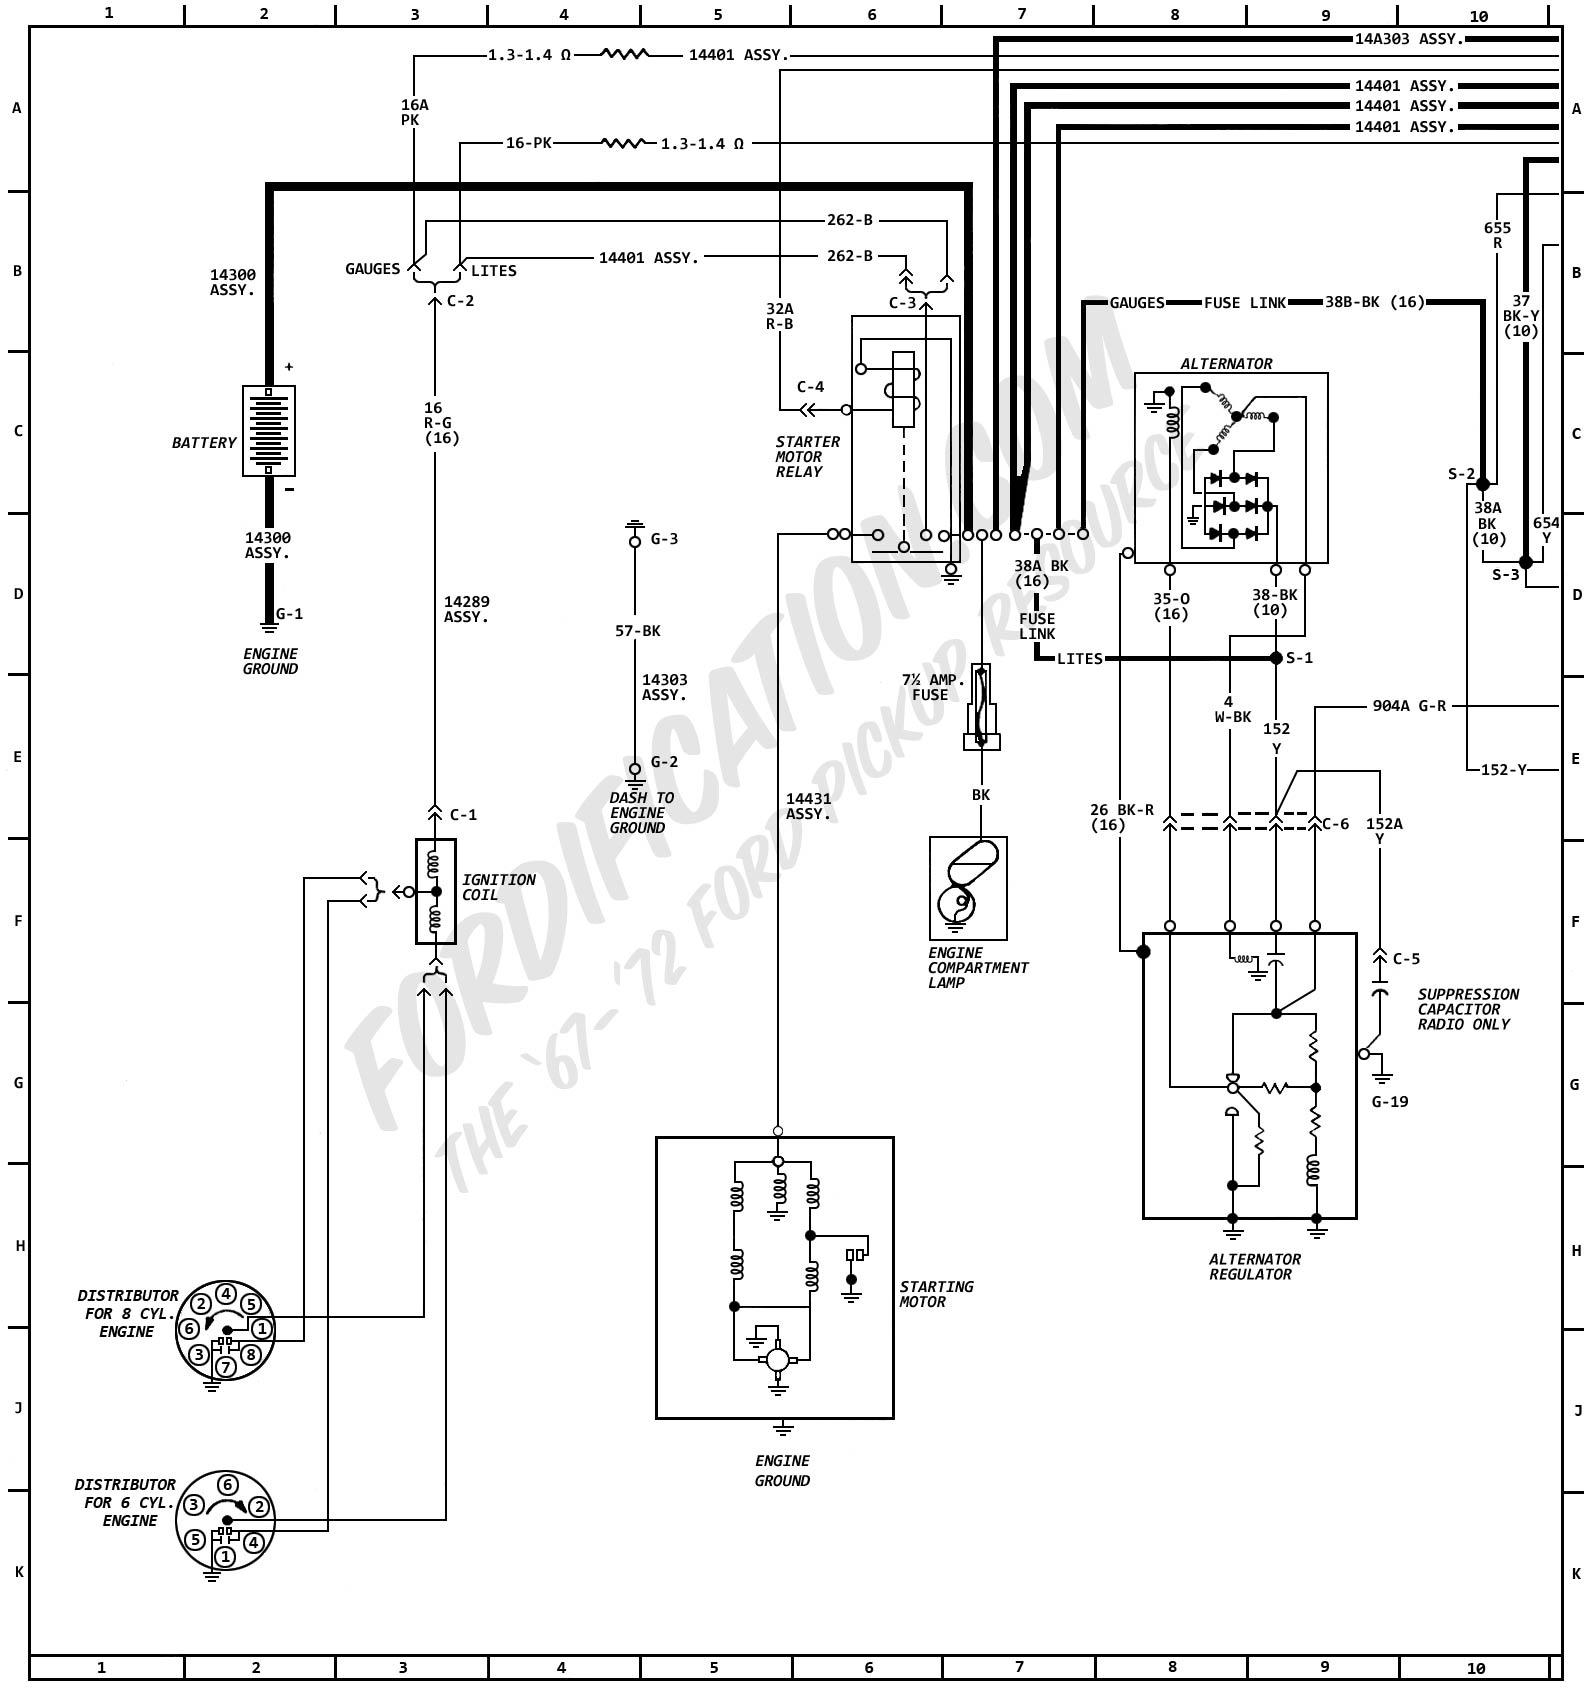 hight resolution of 1972 ford f100 wiring diagram wiring diagram database 1972 ford mustang wiring diagram 1972 ford wiring diagram